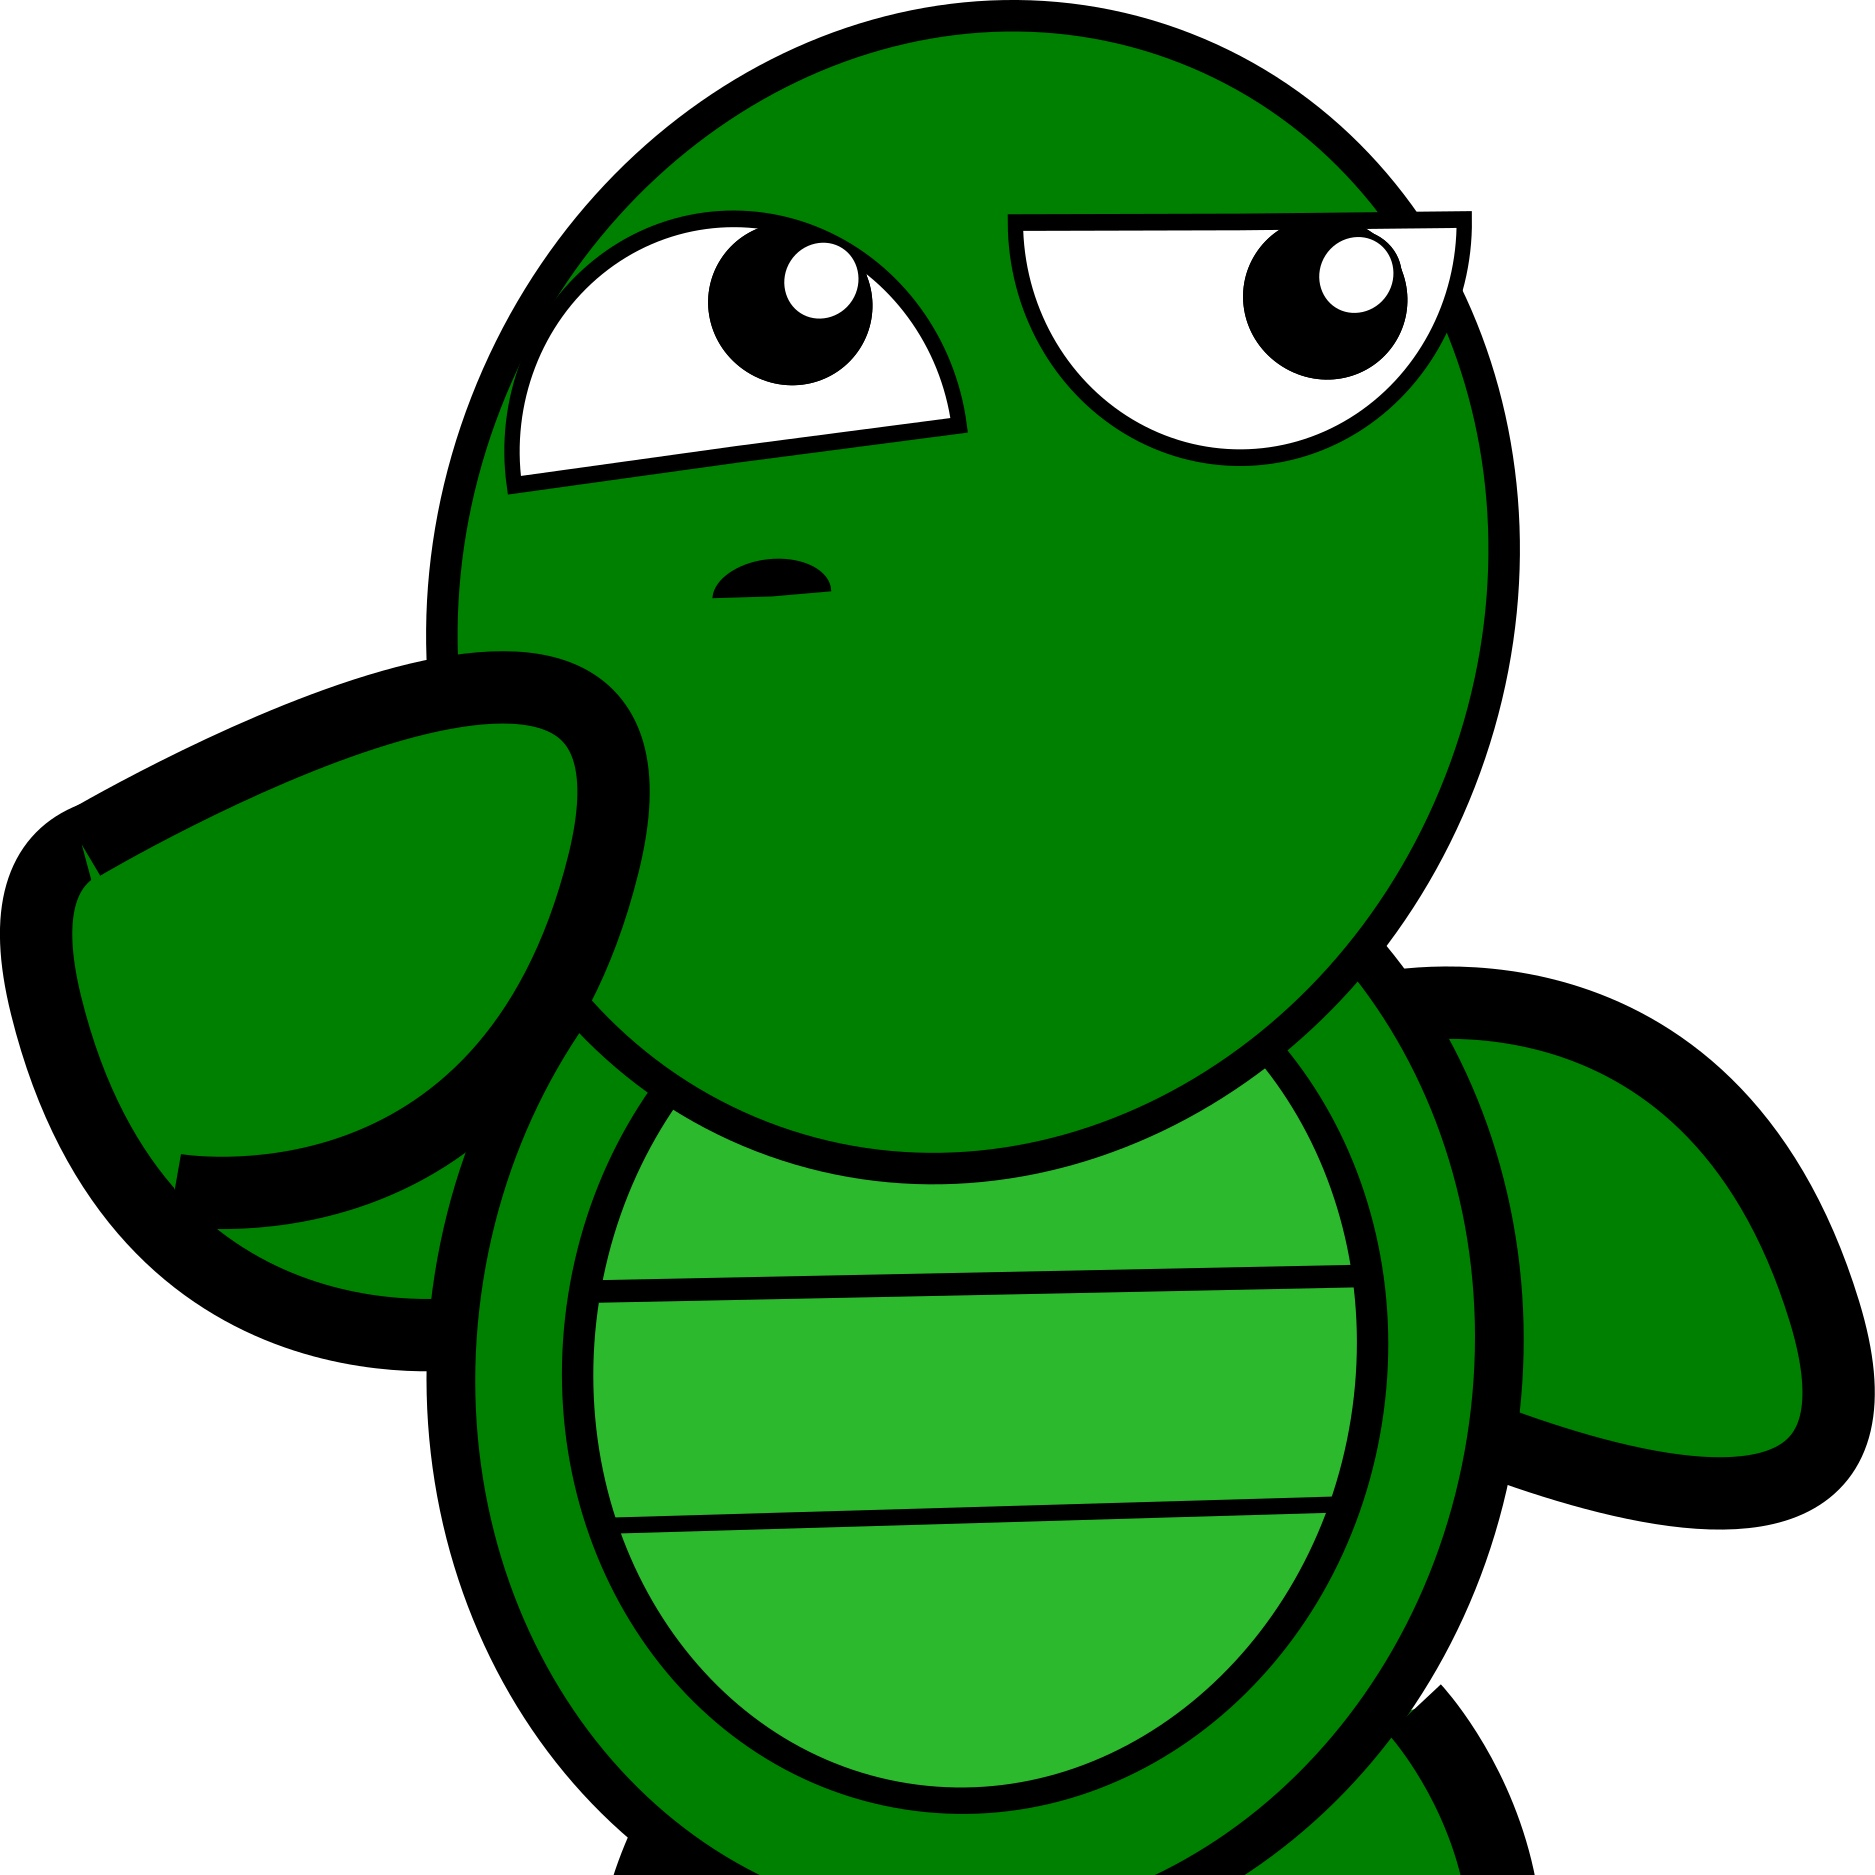 turtles-clipart-easy-12.jpg